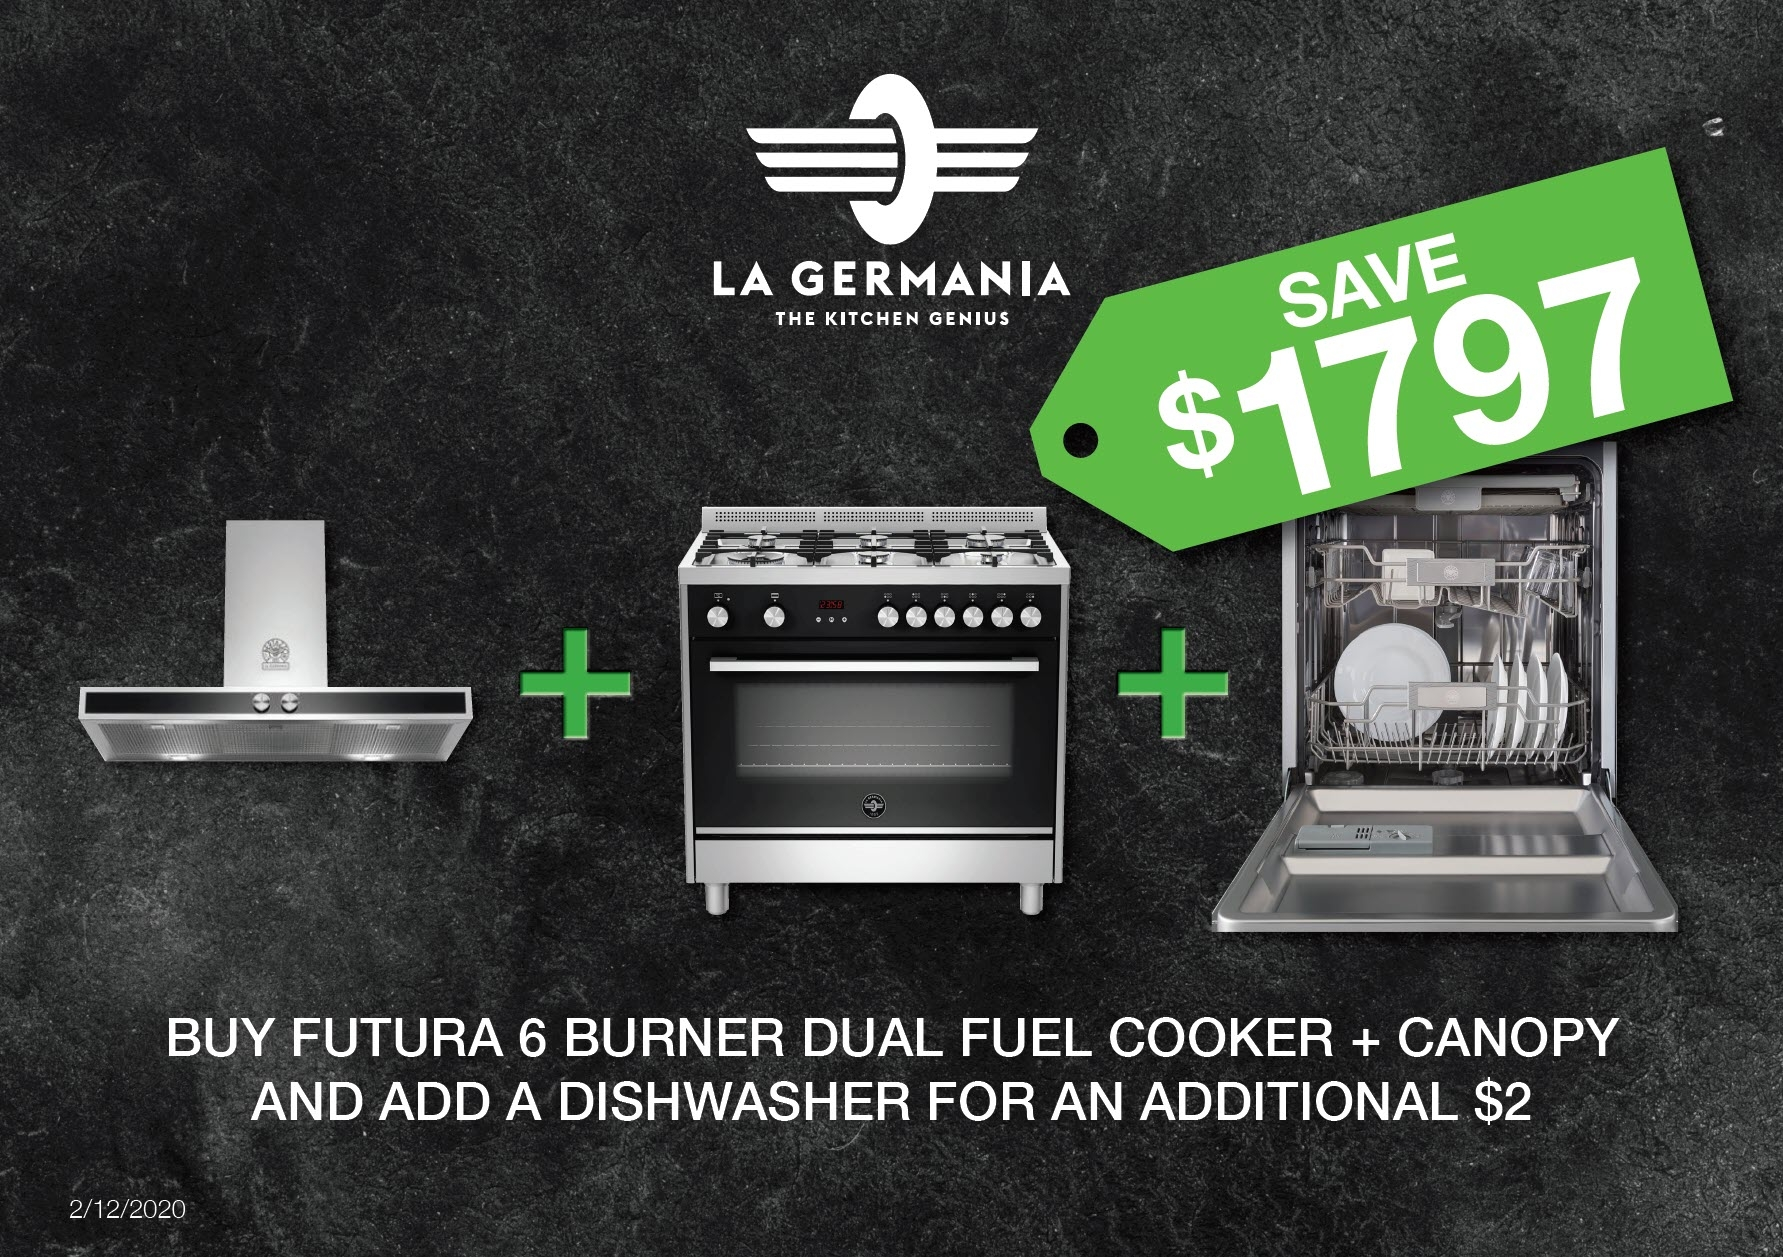 La Germania Nov 2020 Promotion Save 1797 with FREE Dishwasher